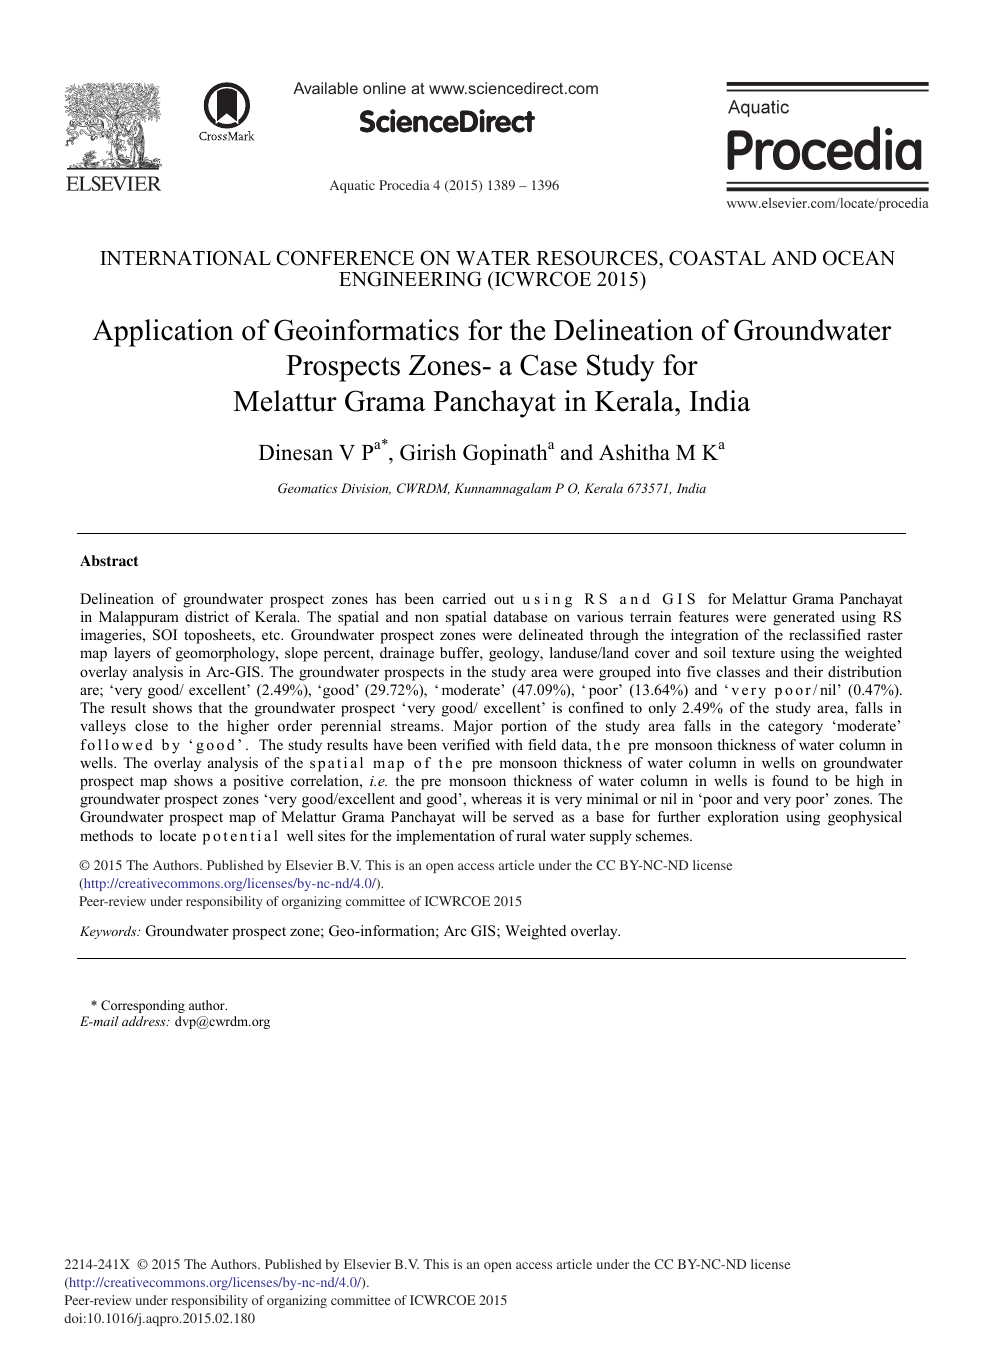 Application of Geoinformatics for the Delineation of Groundwater